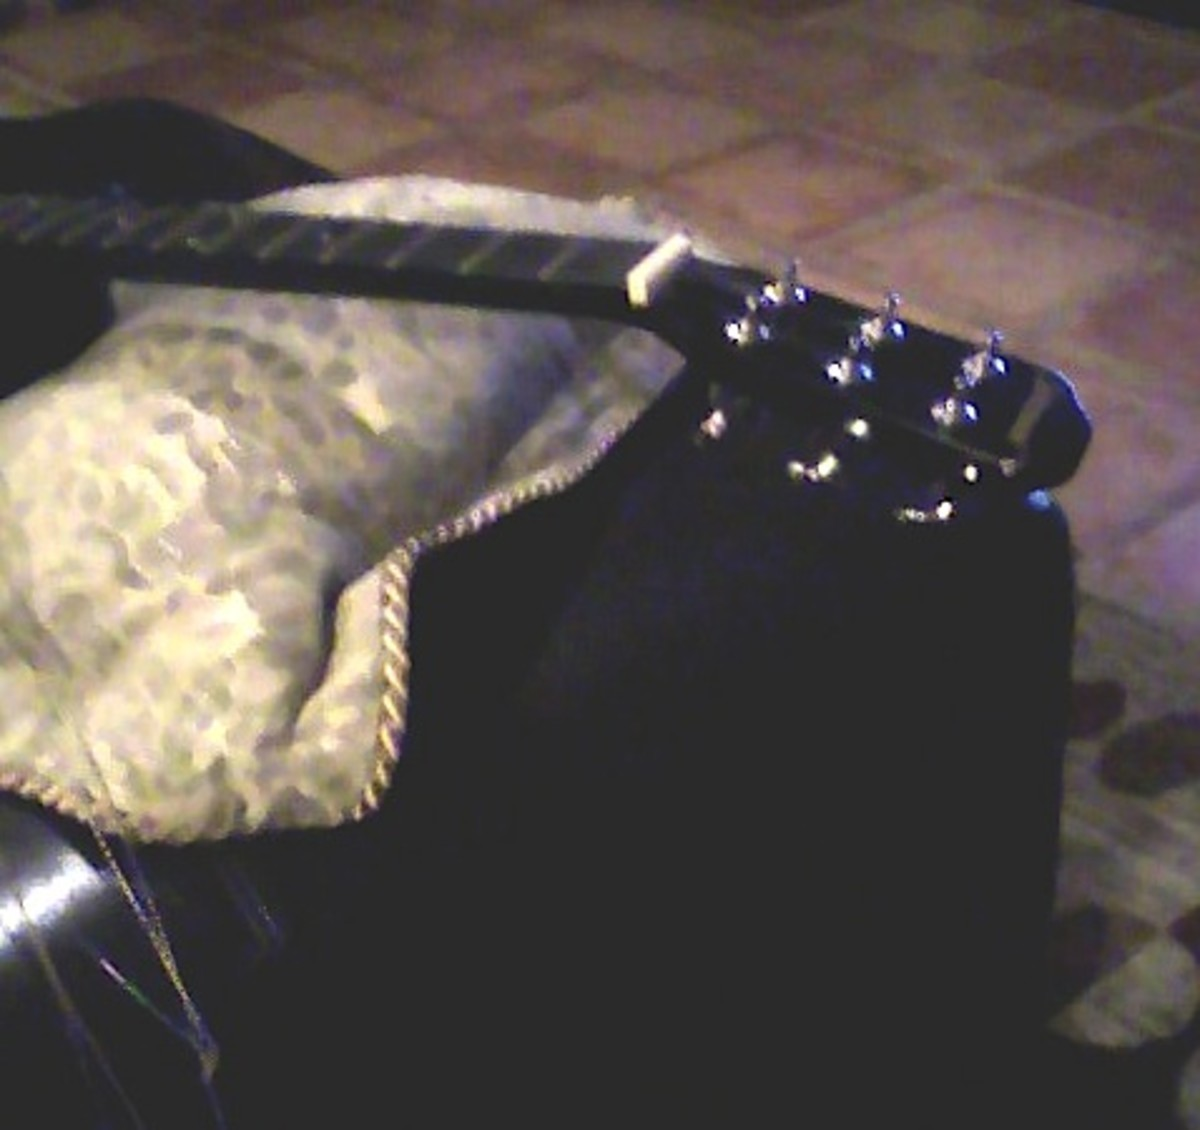 The strings off the neck; pillow propping up guitar.